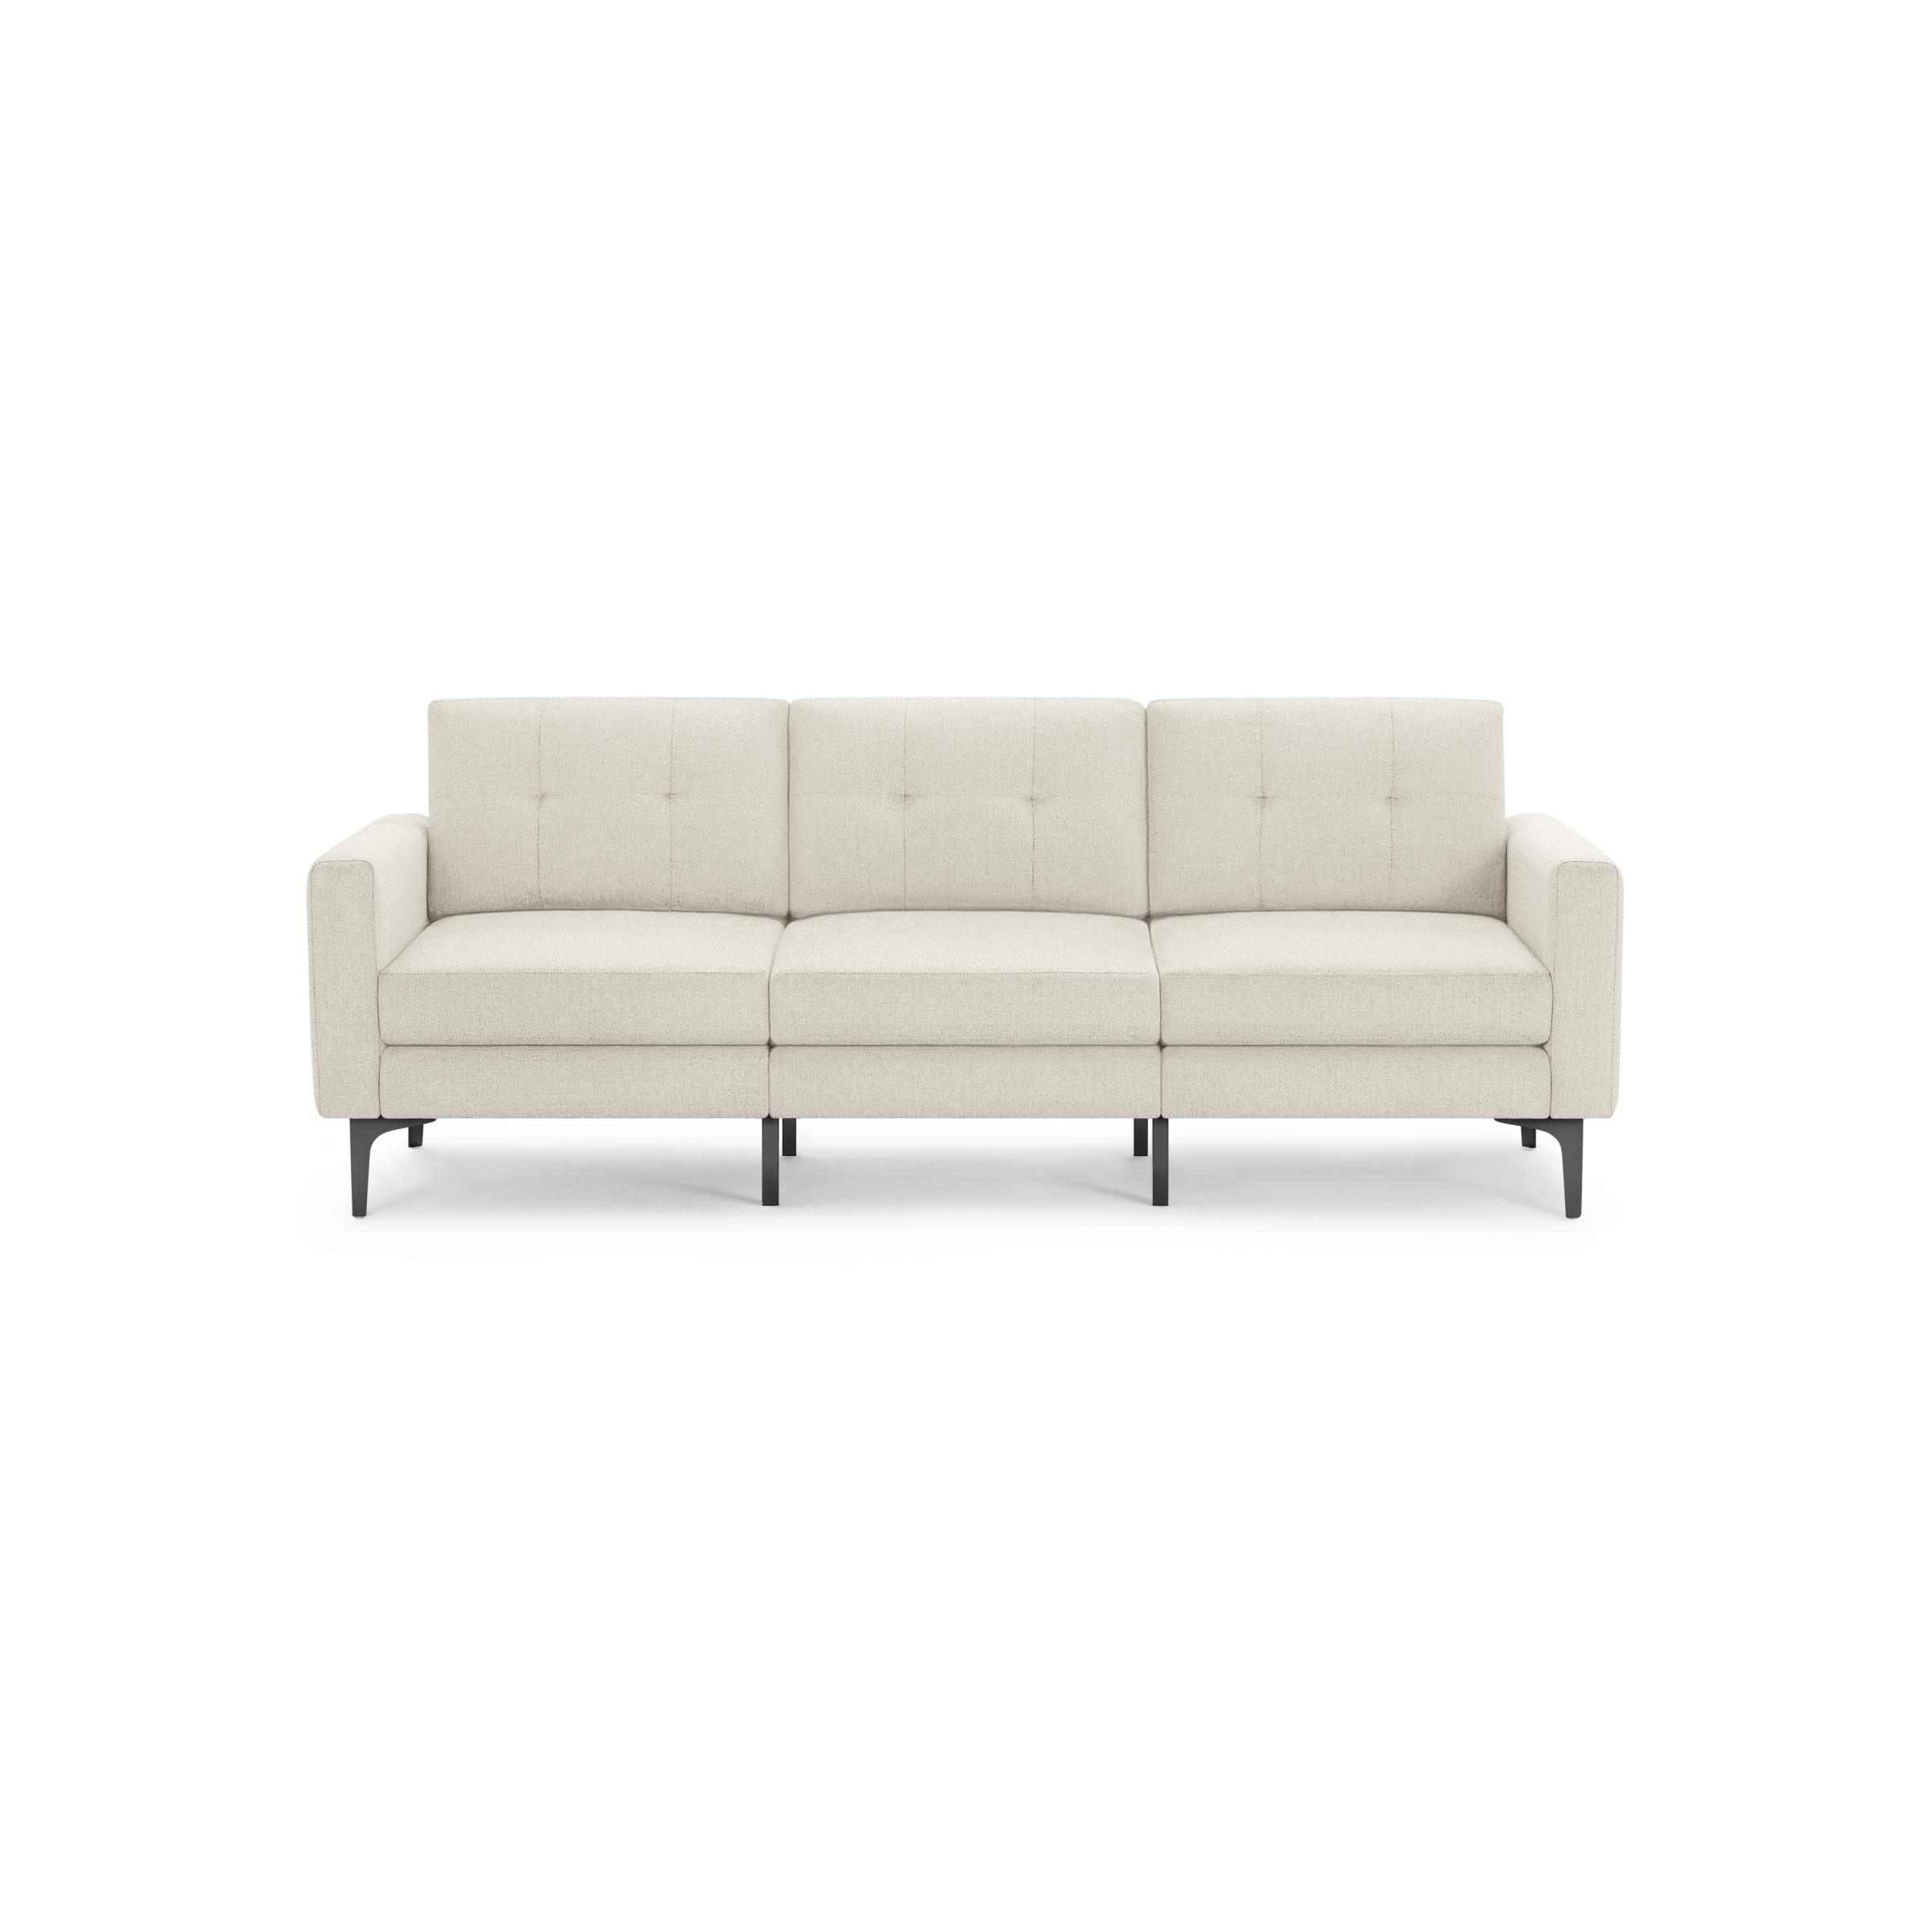 The Block Nomad Sofa in Ivory